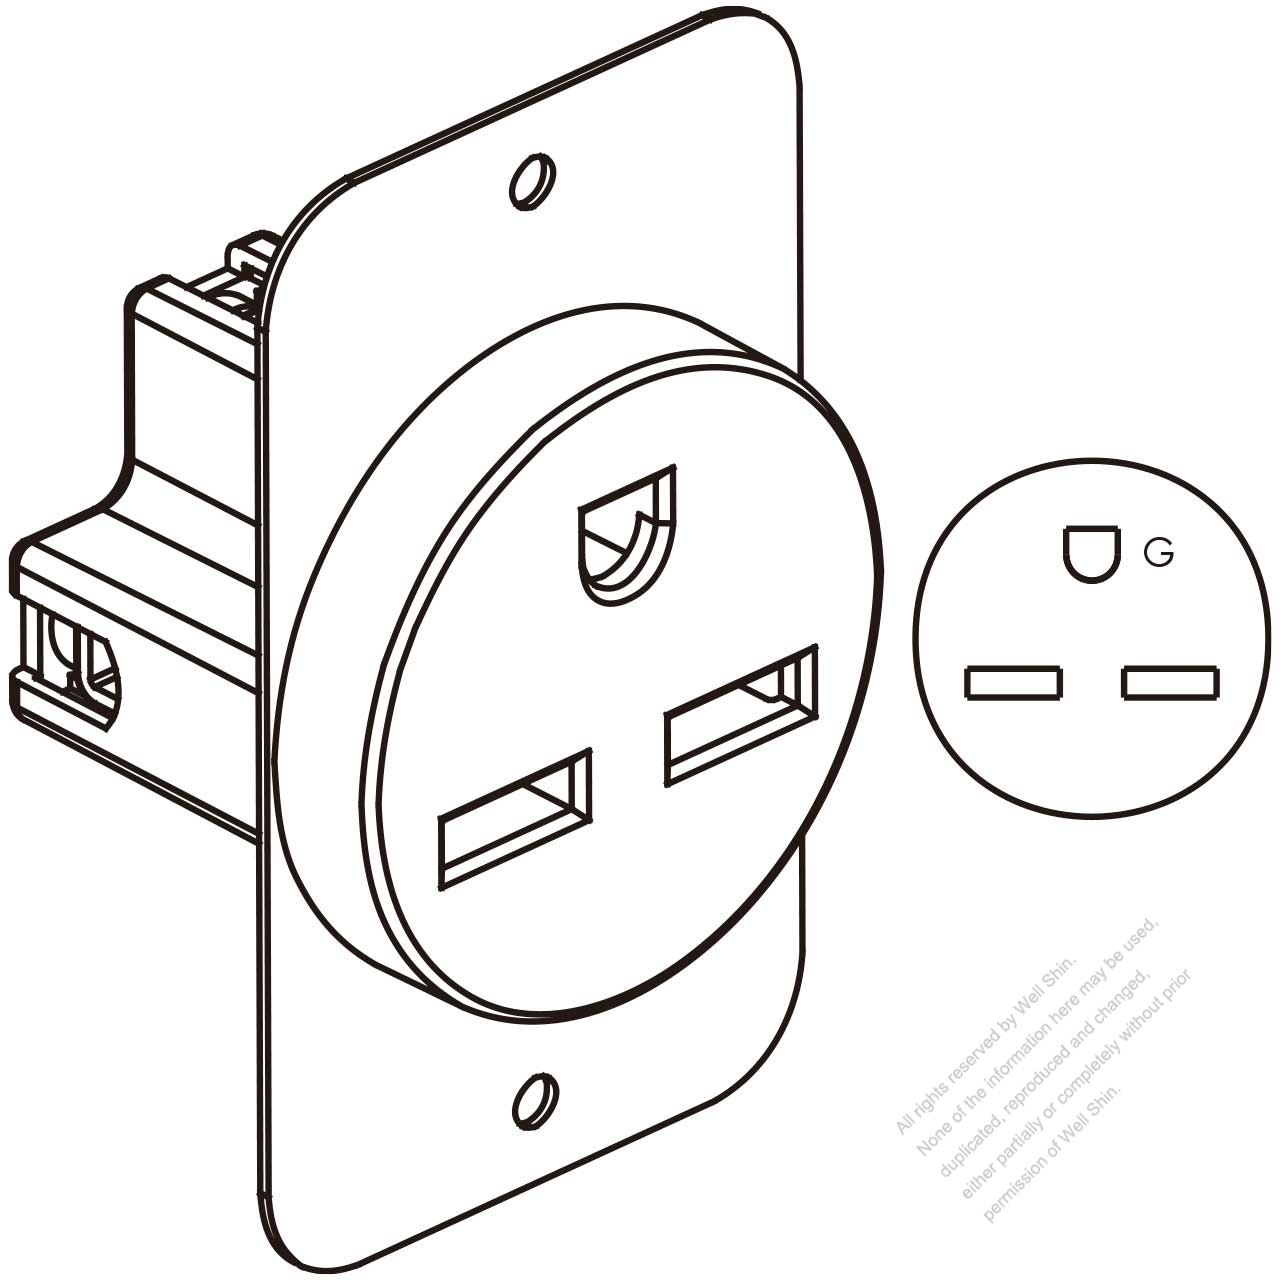 USA/Canada Flush Mount Receptacle NEMA 6-30R, 2 P 3 Wire